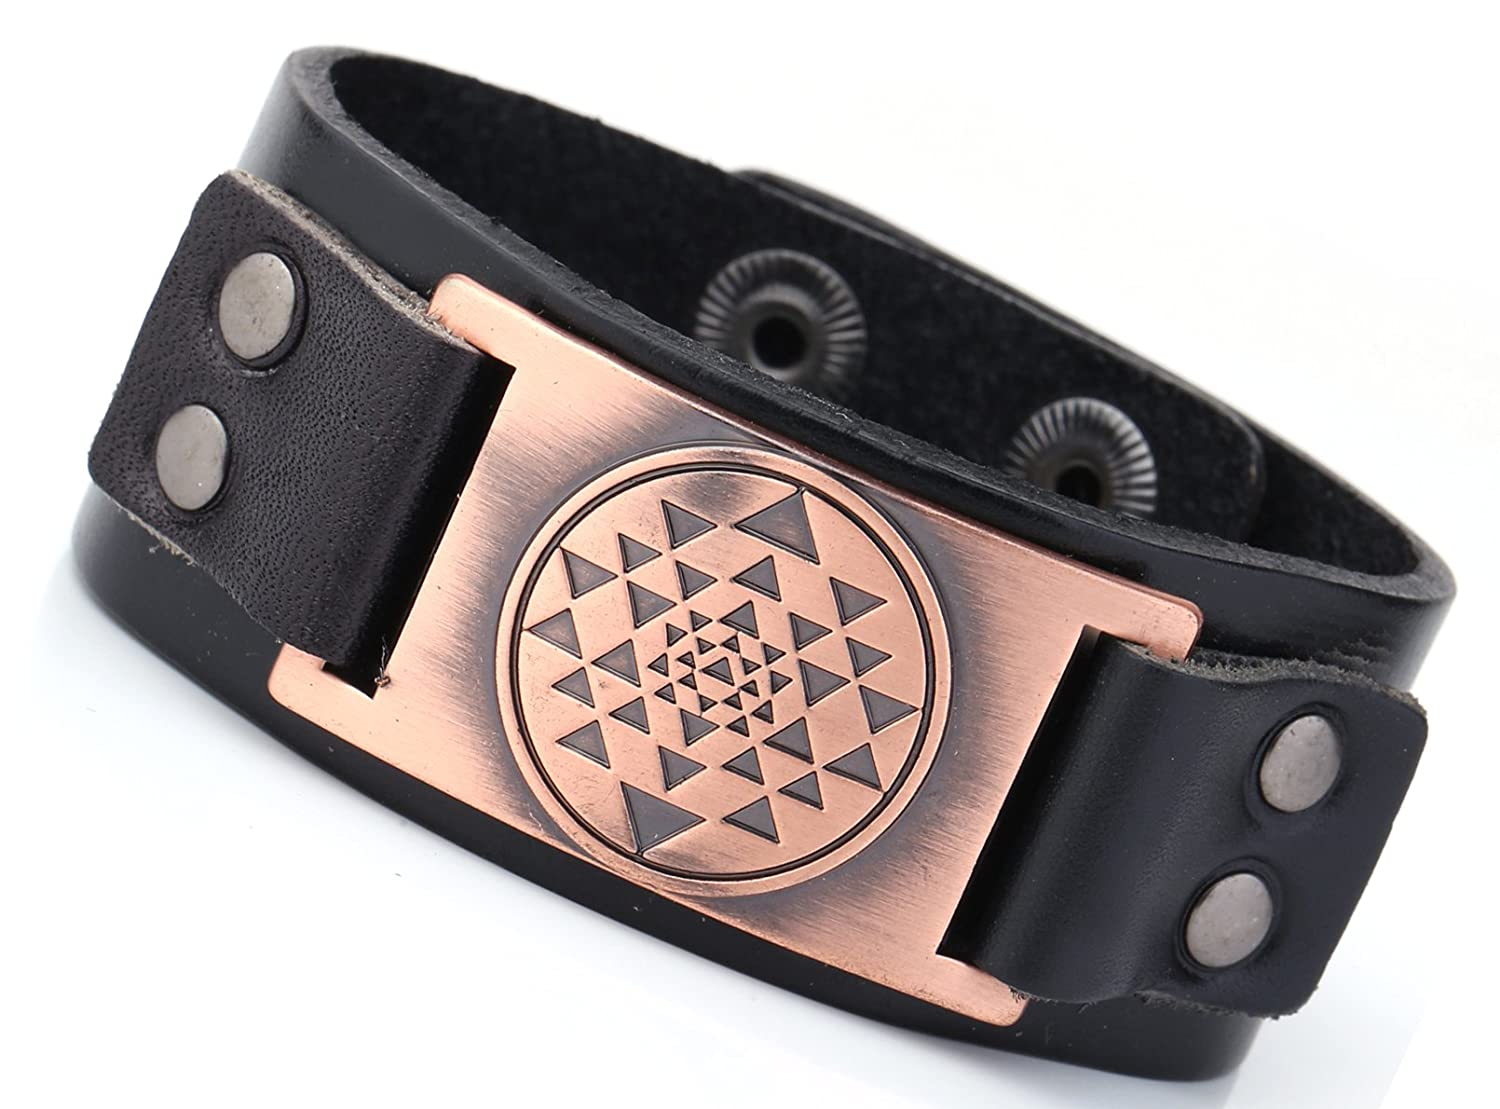 Sacred Geometry Mandala Sri Yantra Buddhism Wristband Leather Bracelet Black) YI WU KE JI